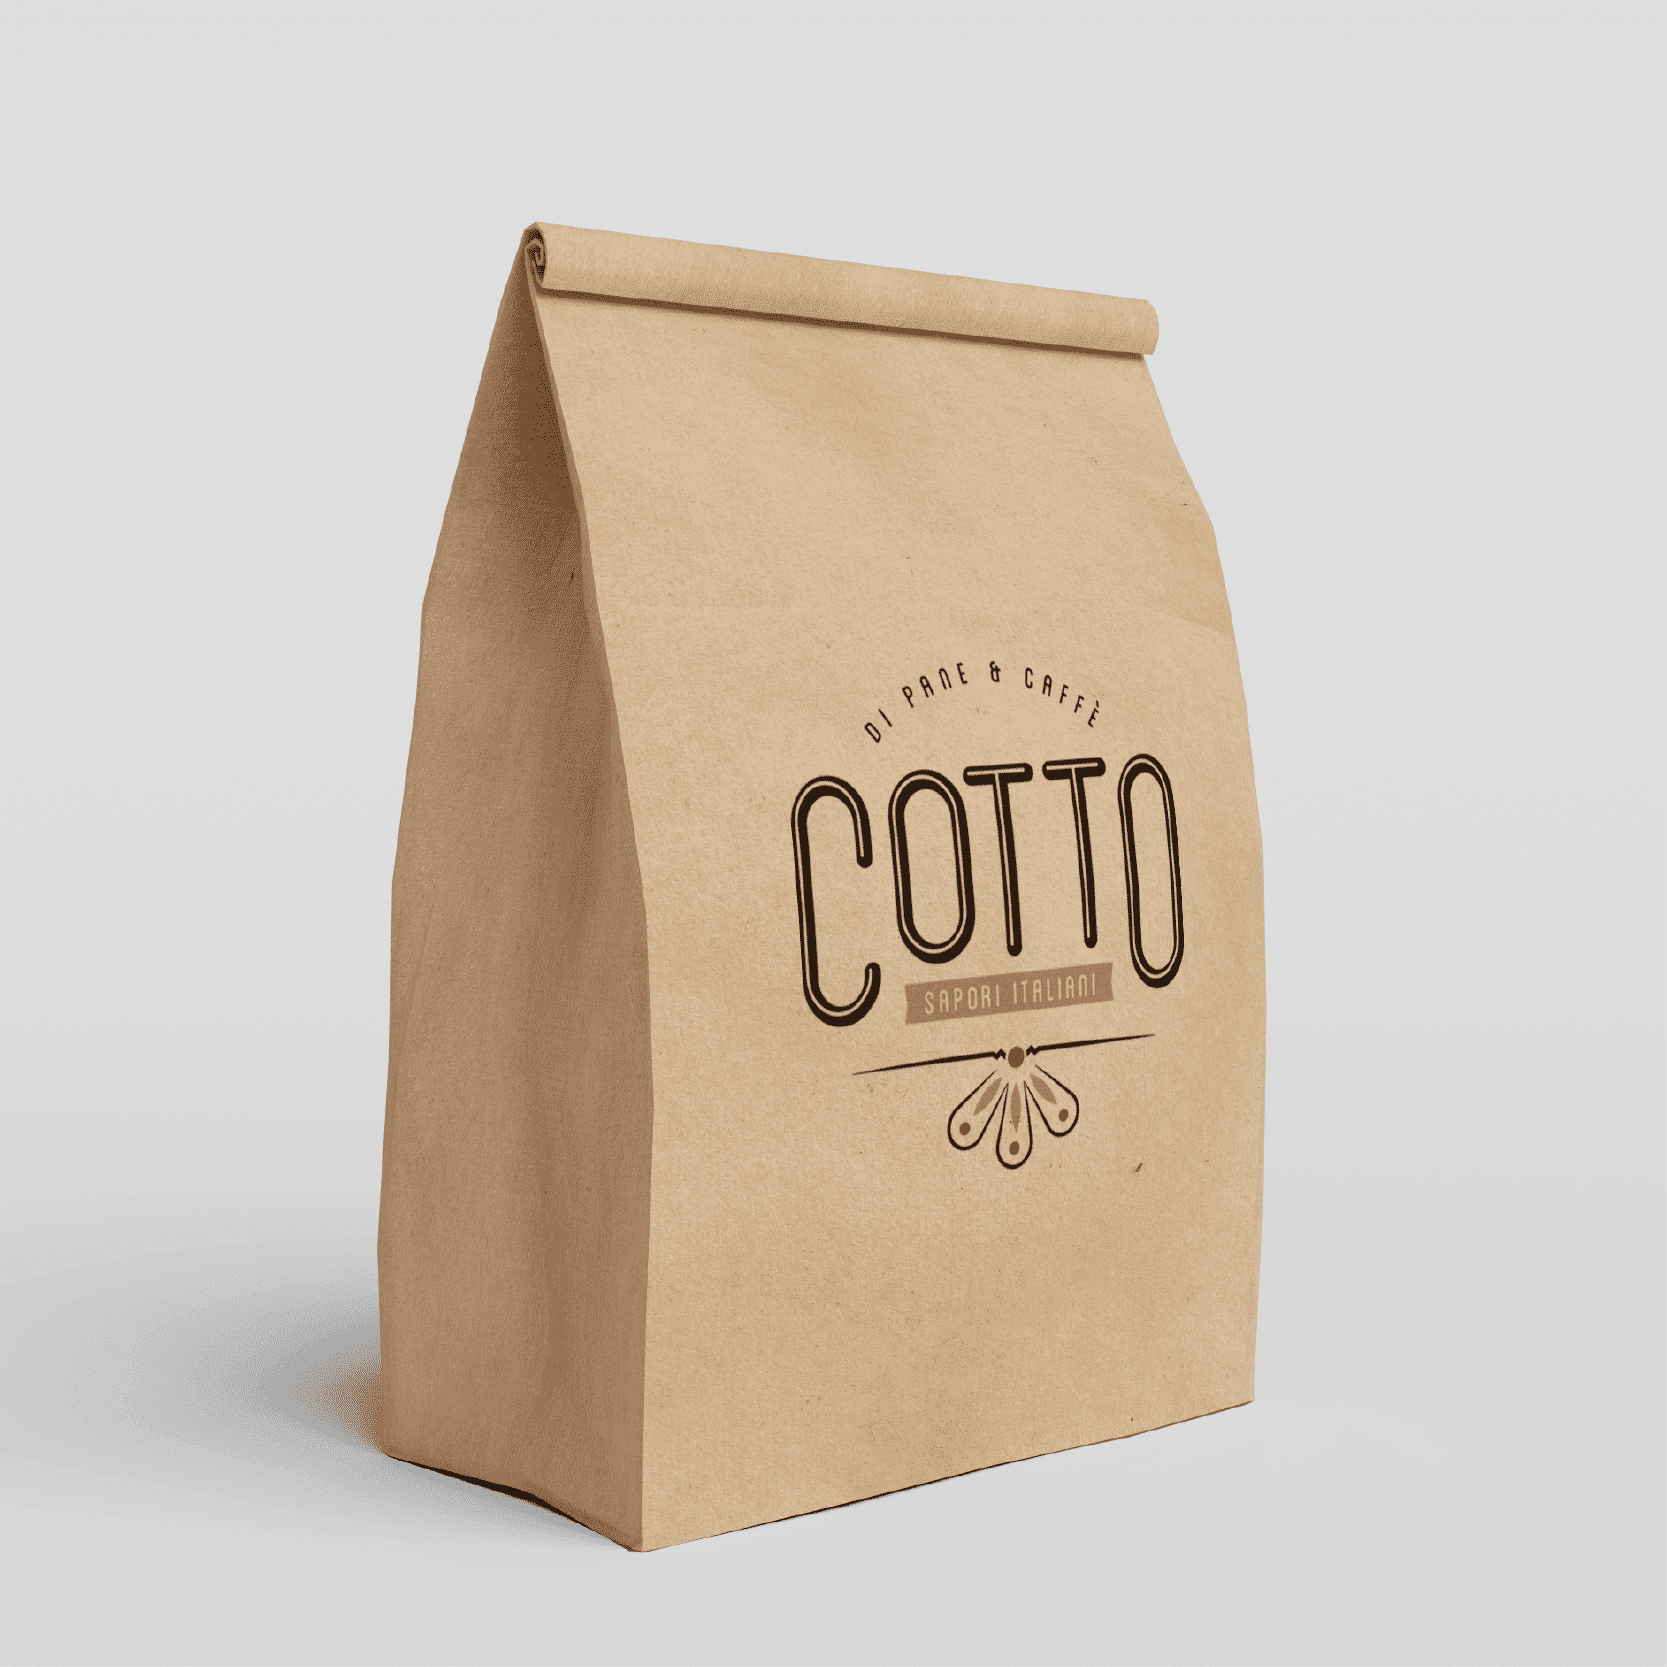 bbadv-mockup-packaging-cotto-palermo